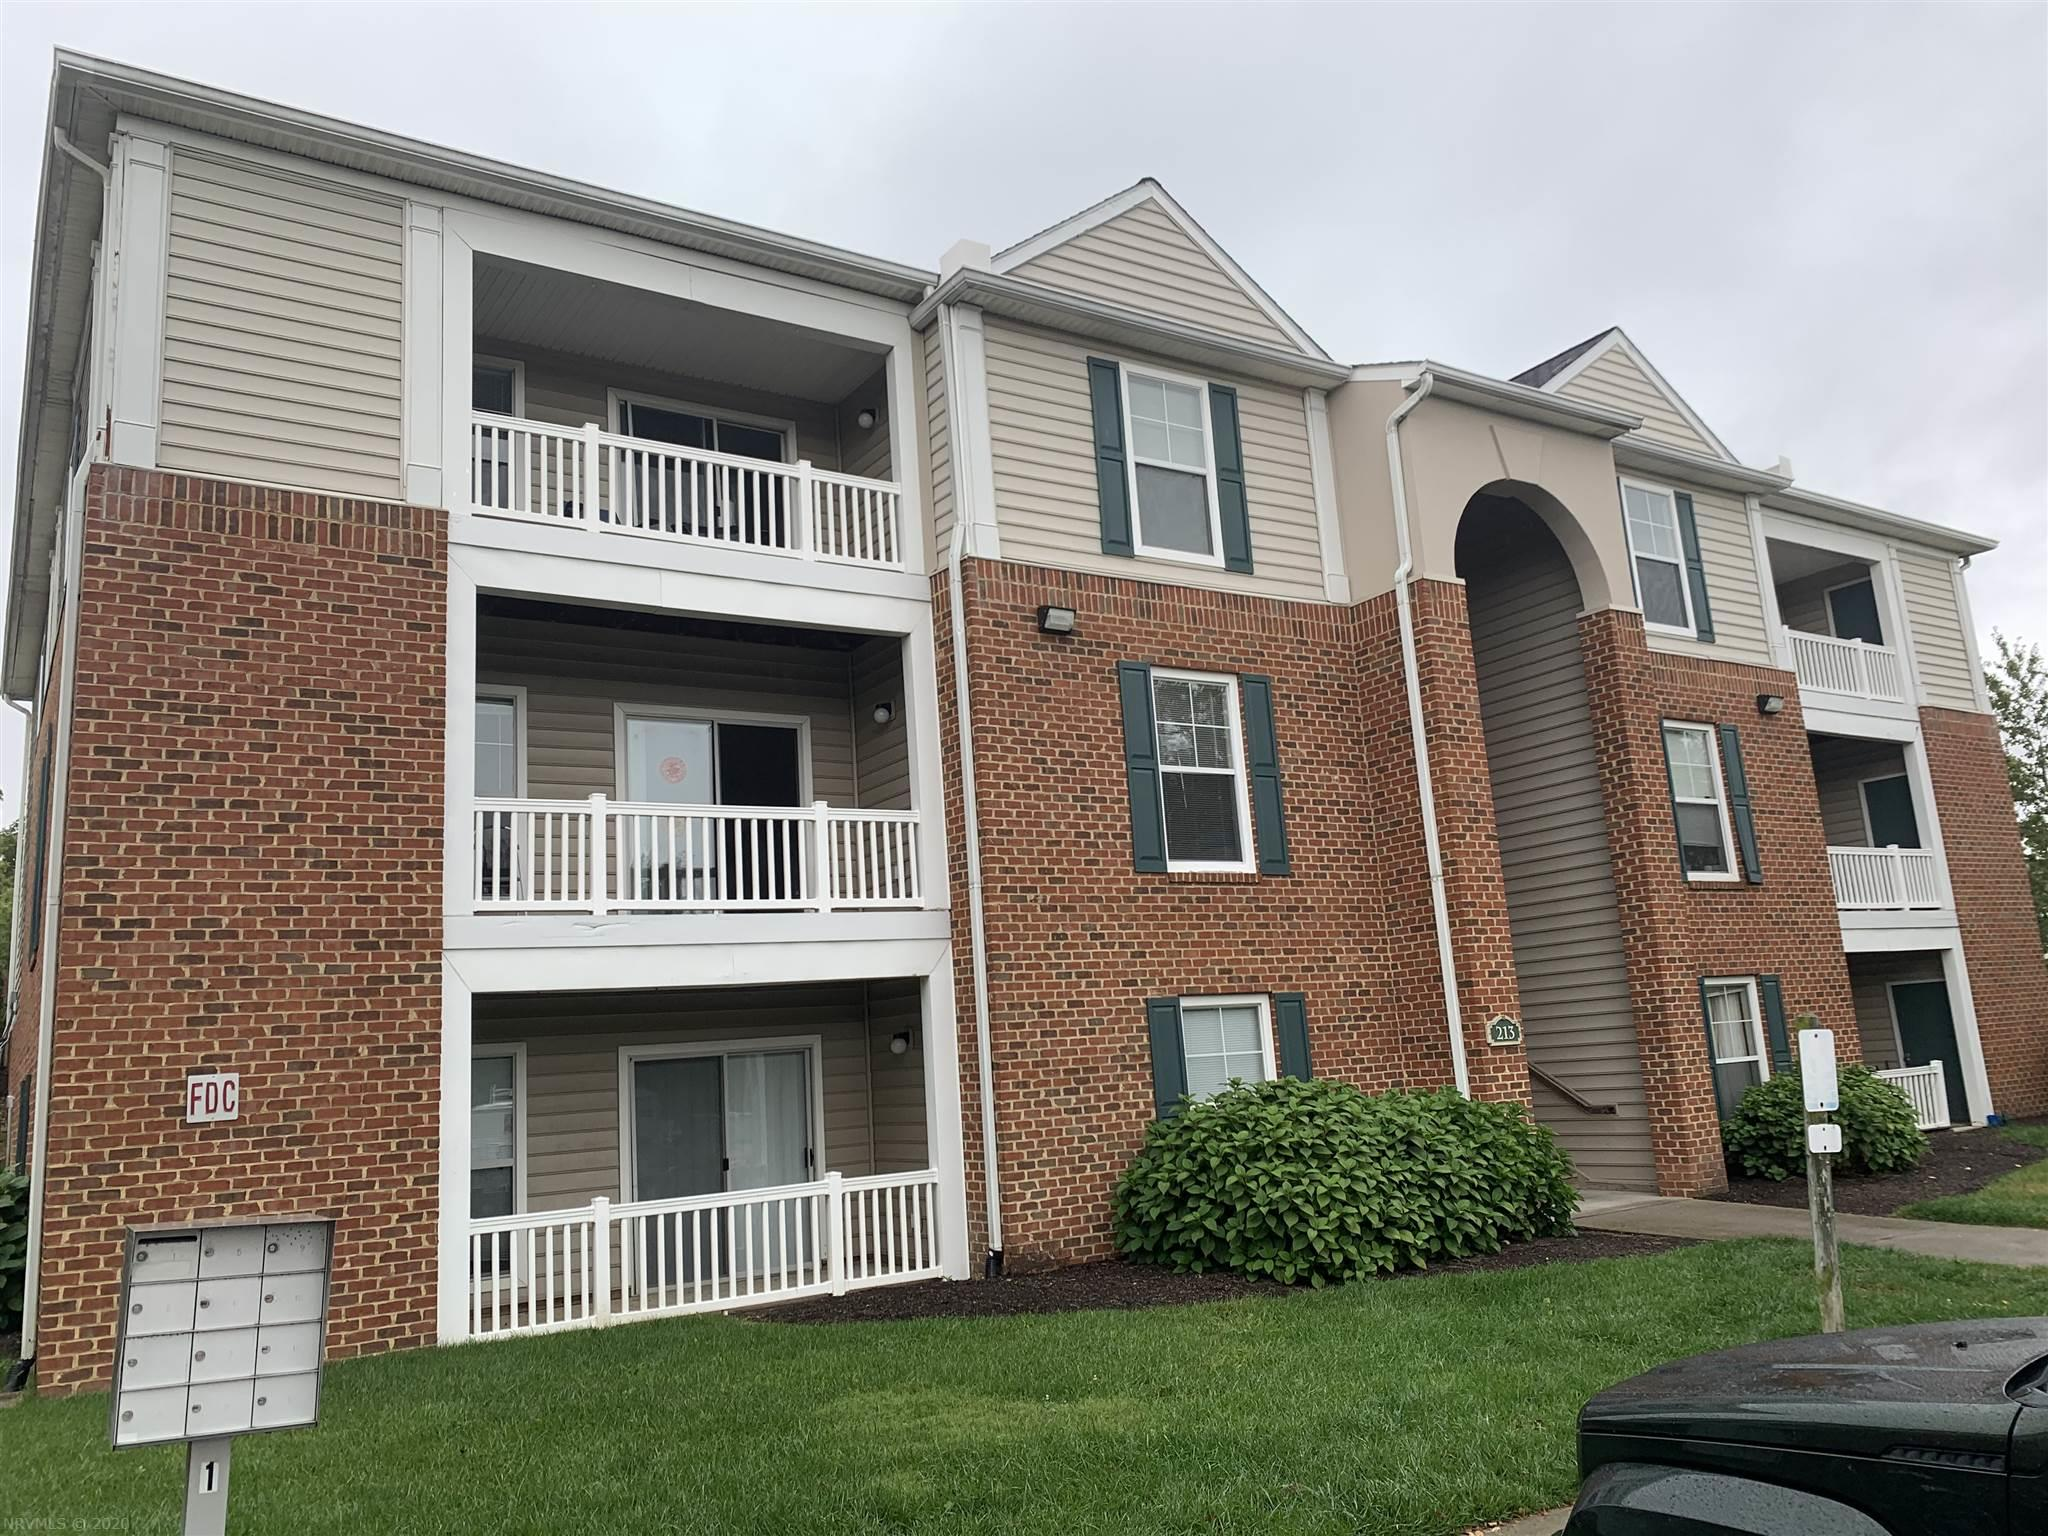 Highly desirable two bedroom plus a loft, two bathroom Knollwood condo in pristine condition being offered for the first time by the original developer. This is unit is in very close proximity to the VT Corporate Research Center and across the street from VCOM. This is the opportunity you've been waiting for. Currently leased through July 2021.